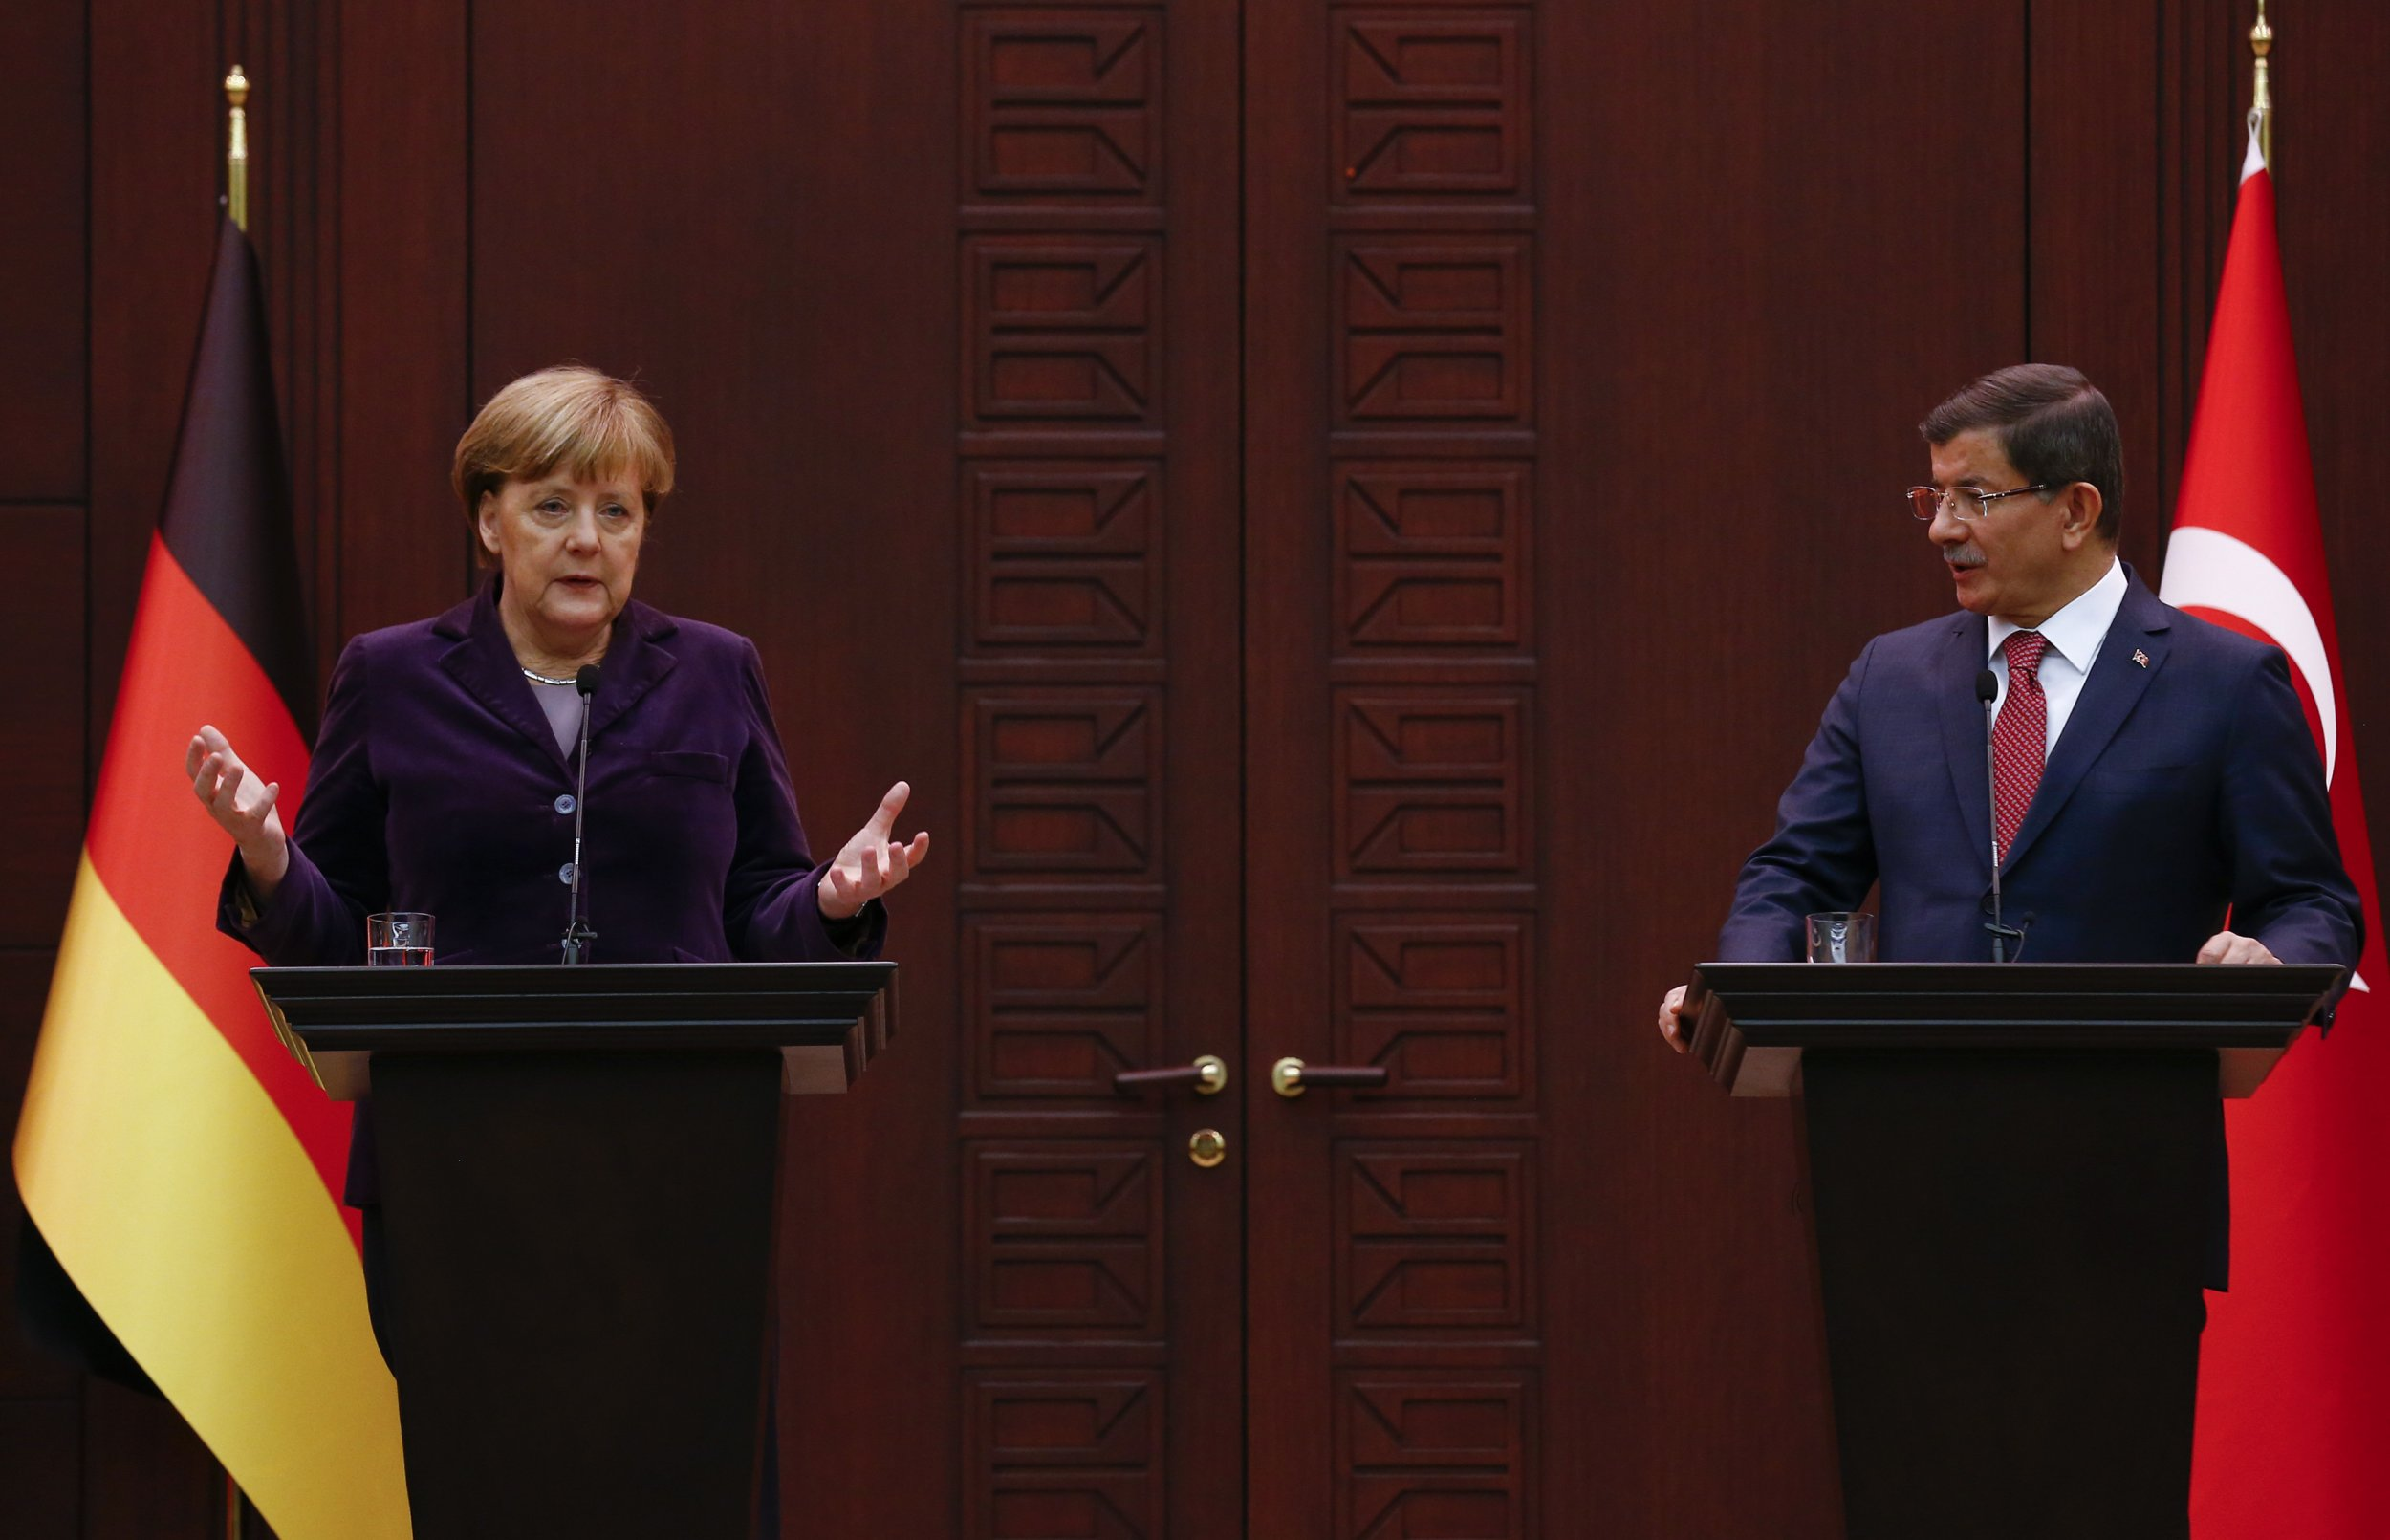 Merkel and Davutoglu ask NATO for help with refugees.